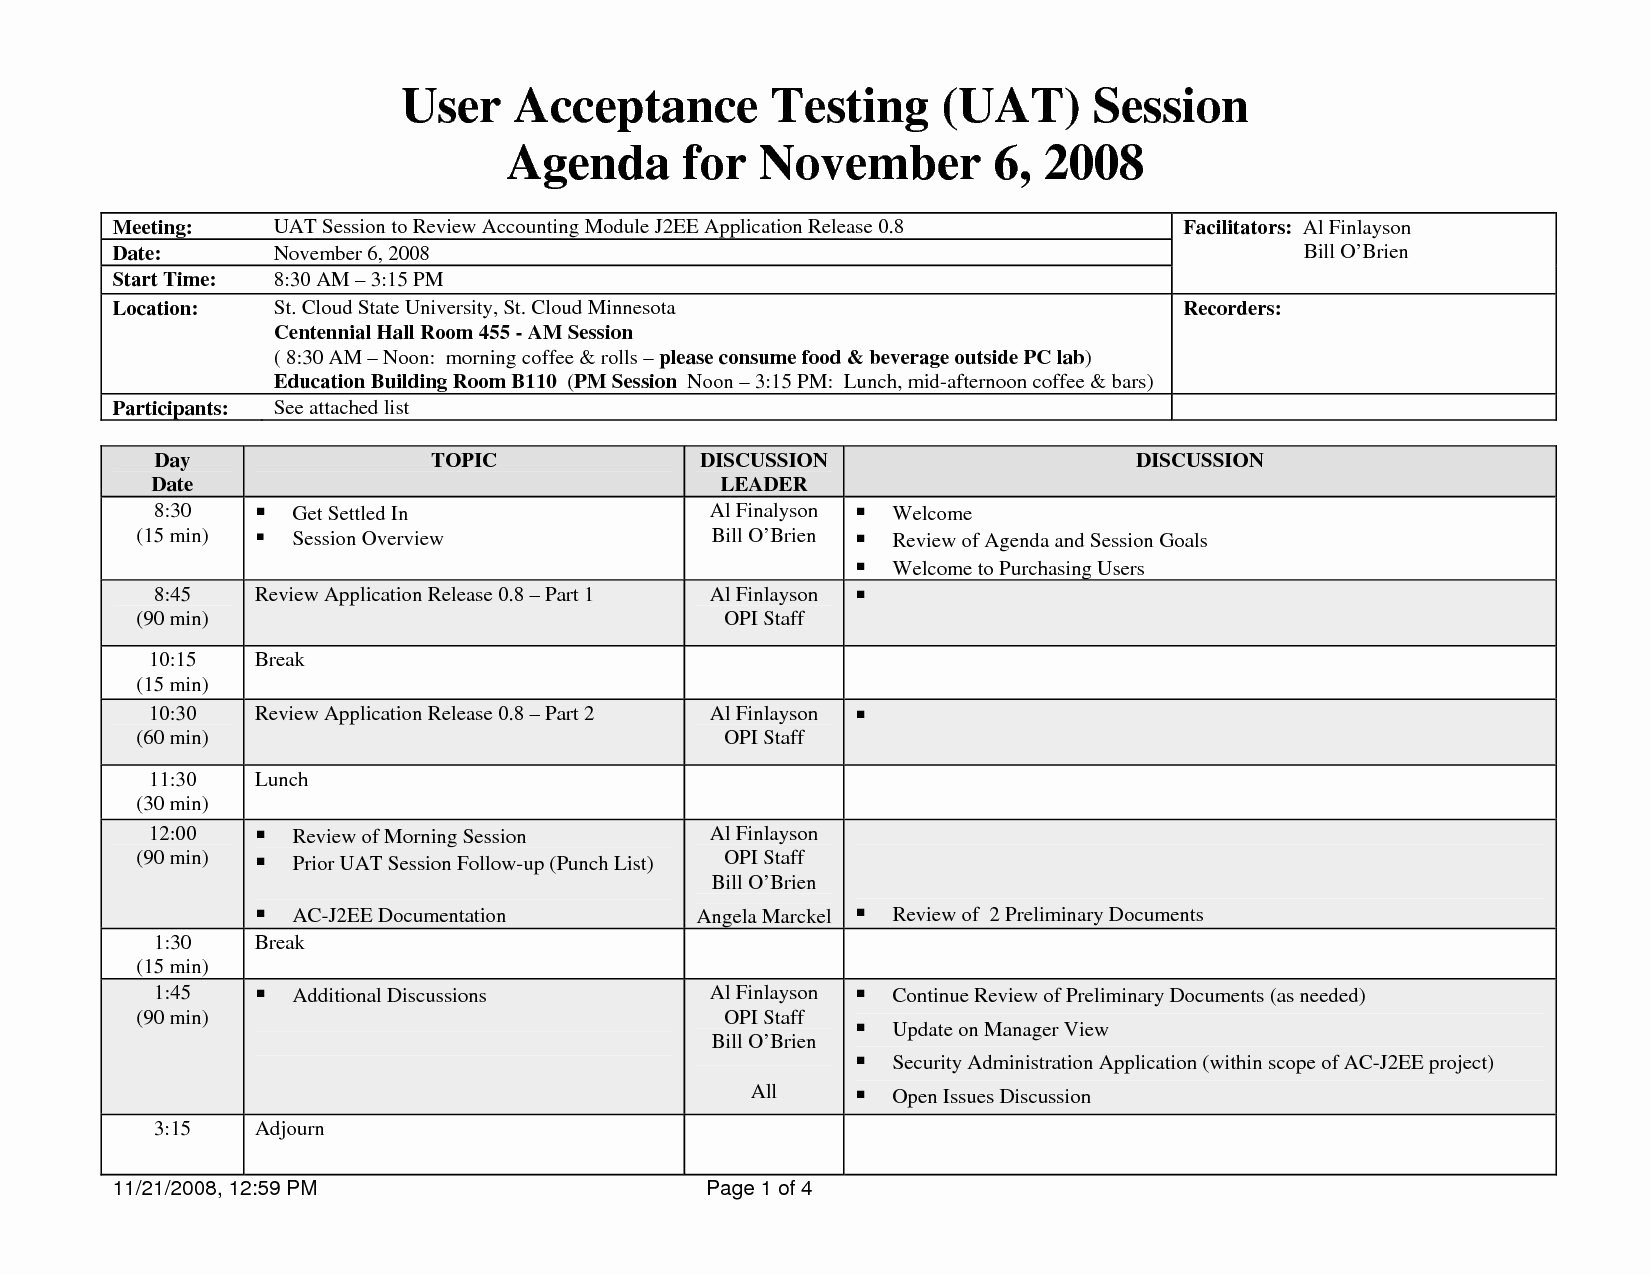 User Acceptance Test Template Inspirational Uat Testing Template User Acceptance Test Template Uat